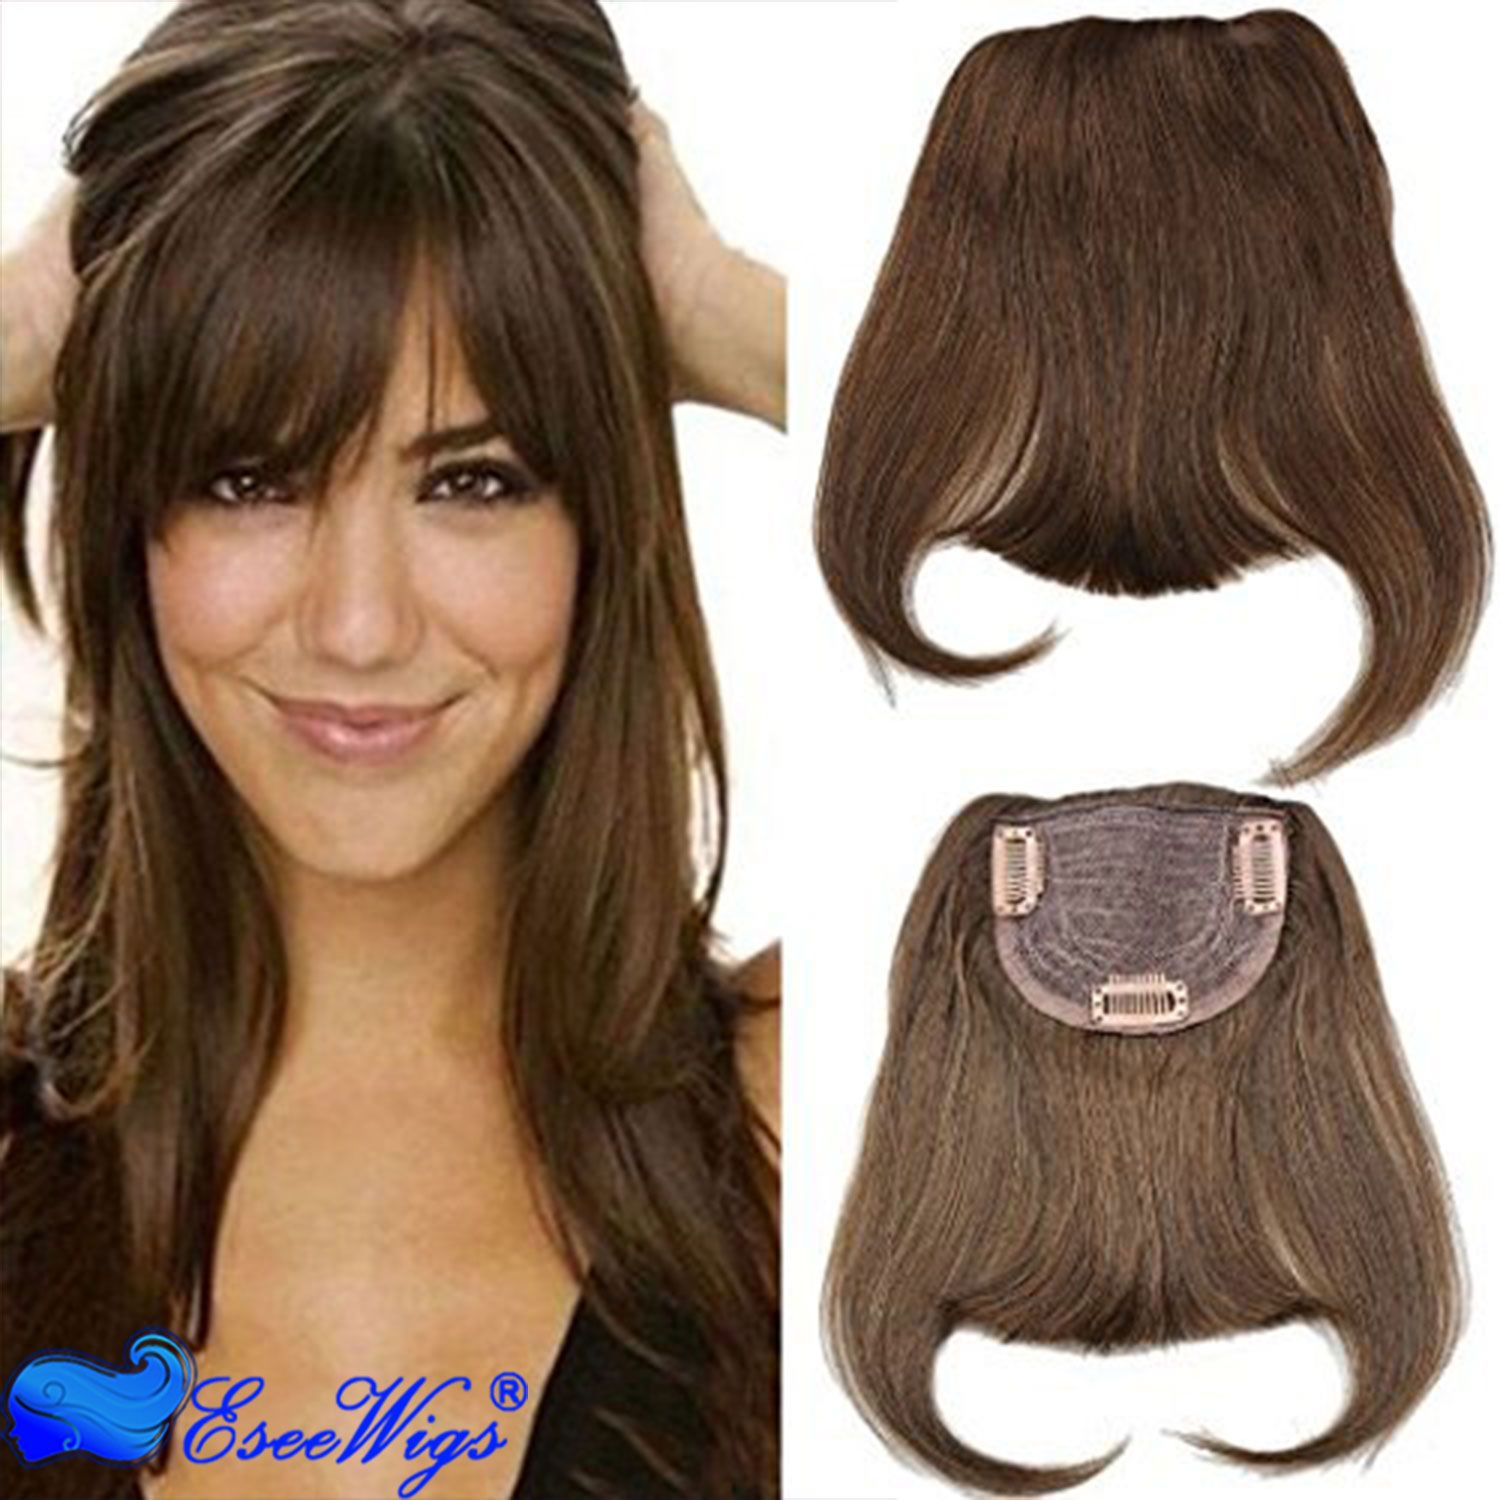 Human Hair Bangs 100 Brazilian Virgin Hair Straight Clip In Bangs Machine Weft With Combs Natur Human Hair Clip Ins Brazilian Human Hair Hairstyles With Bangs